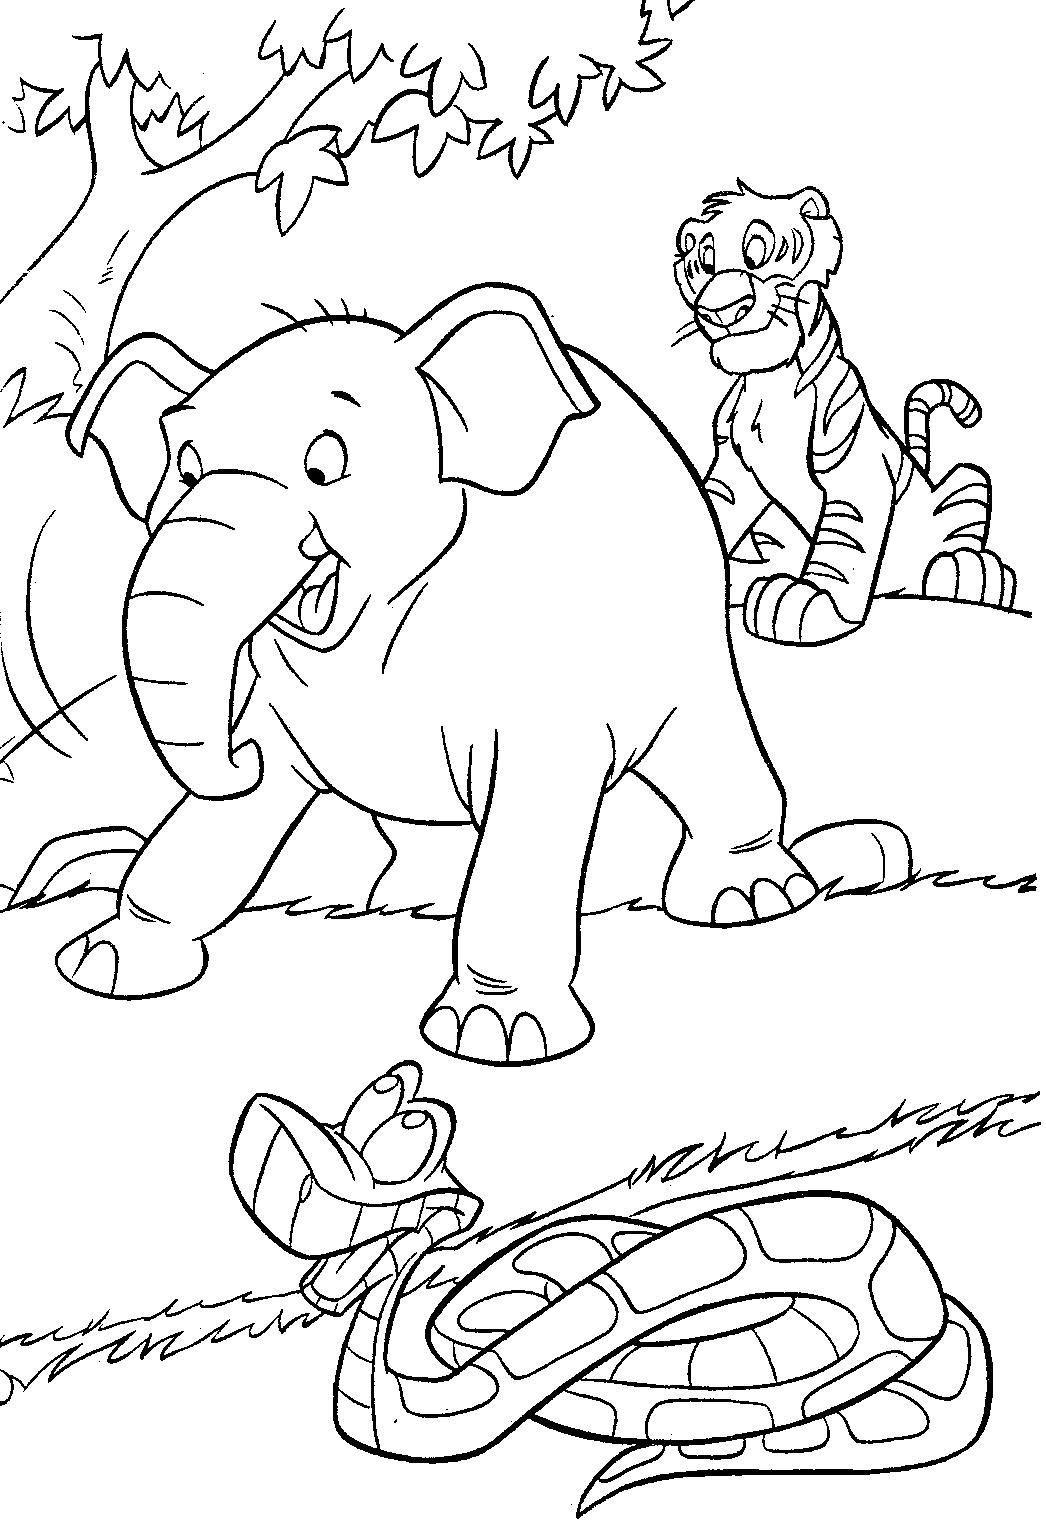 jungle book coloring pages for kids the jungle book coloring pages for kids printable free jungle coloring pages for book kids